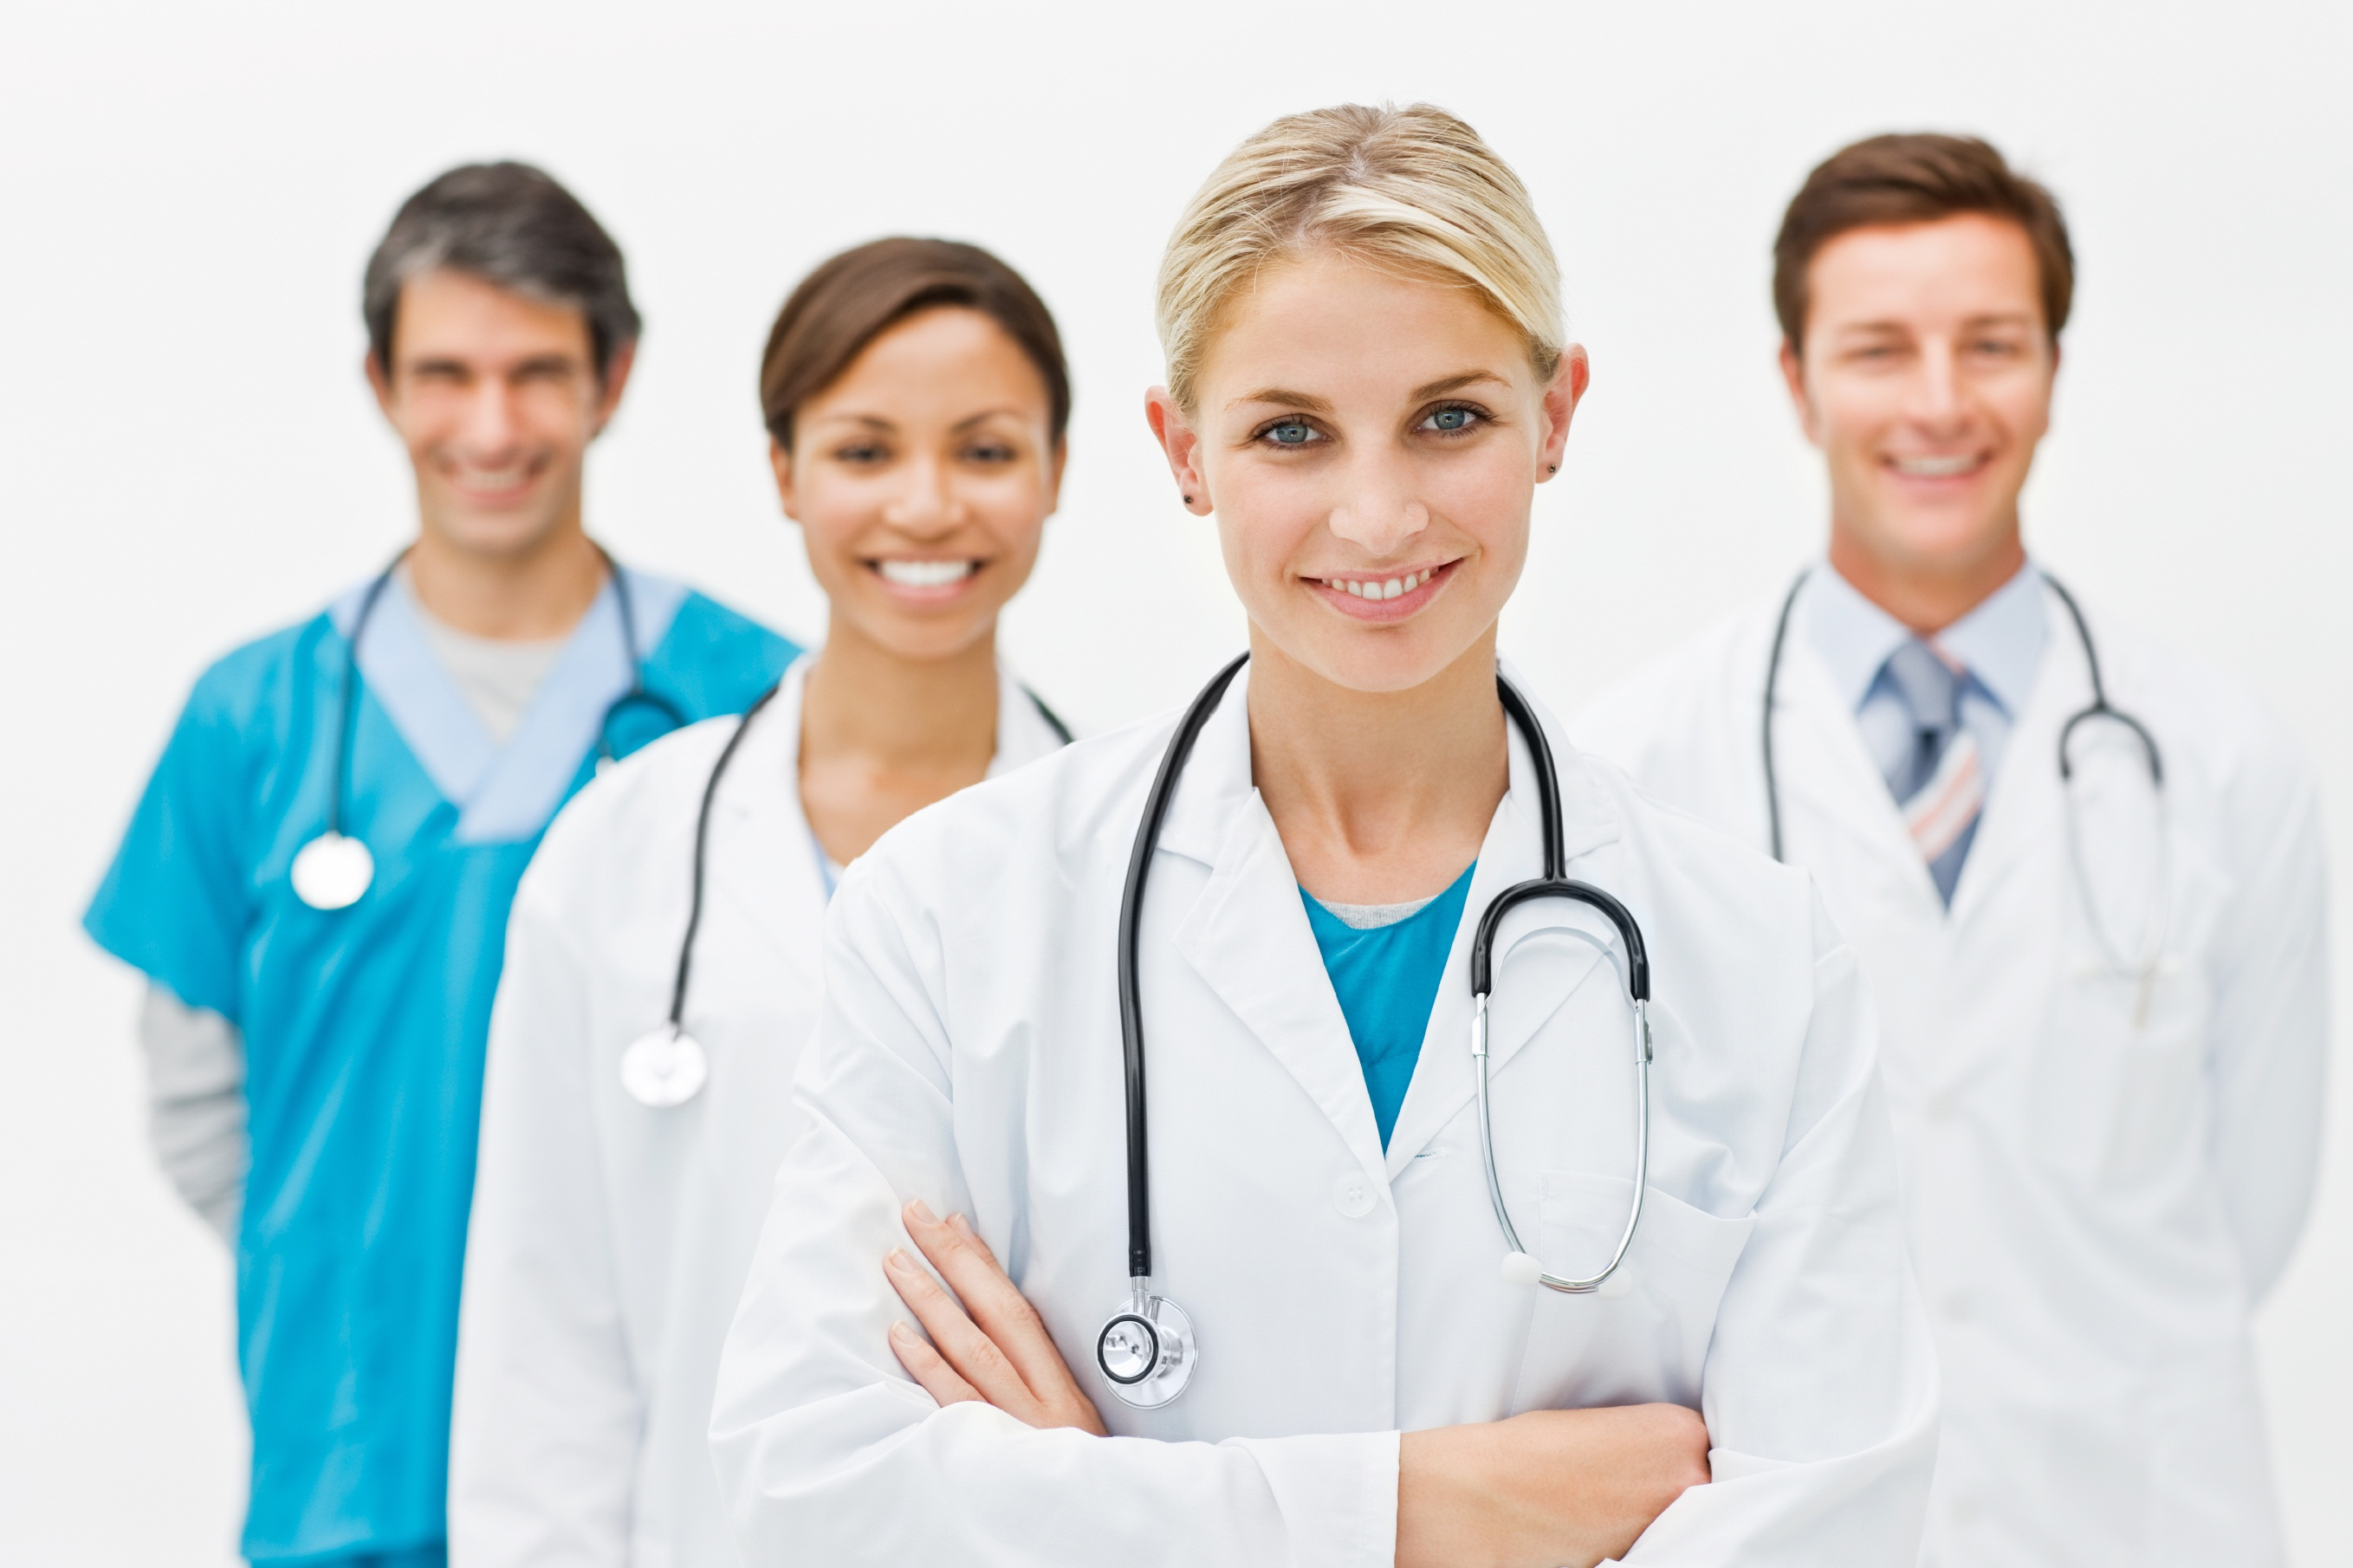 a look at the practice of nursing in the medical profession